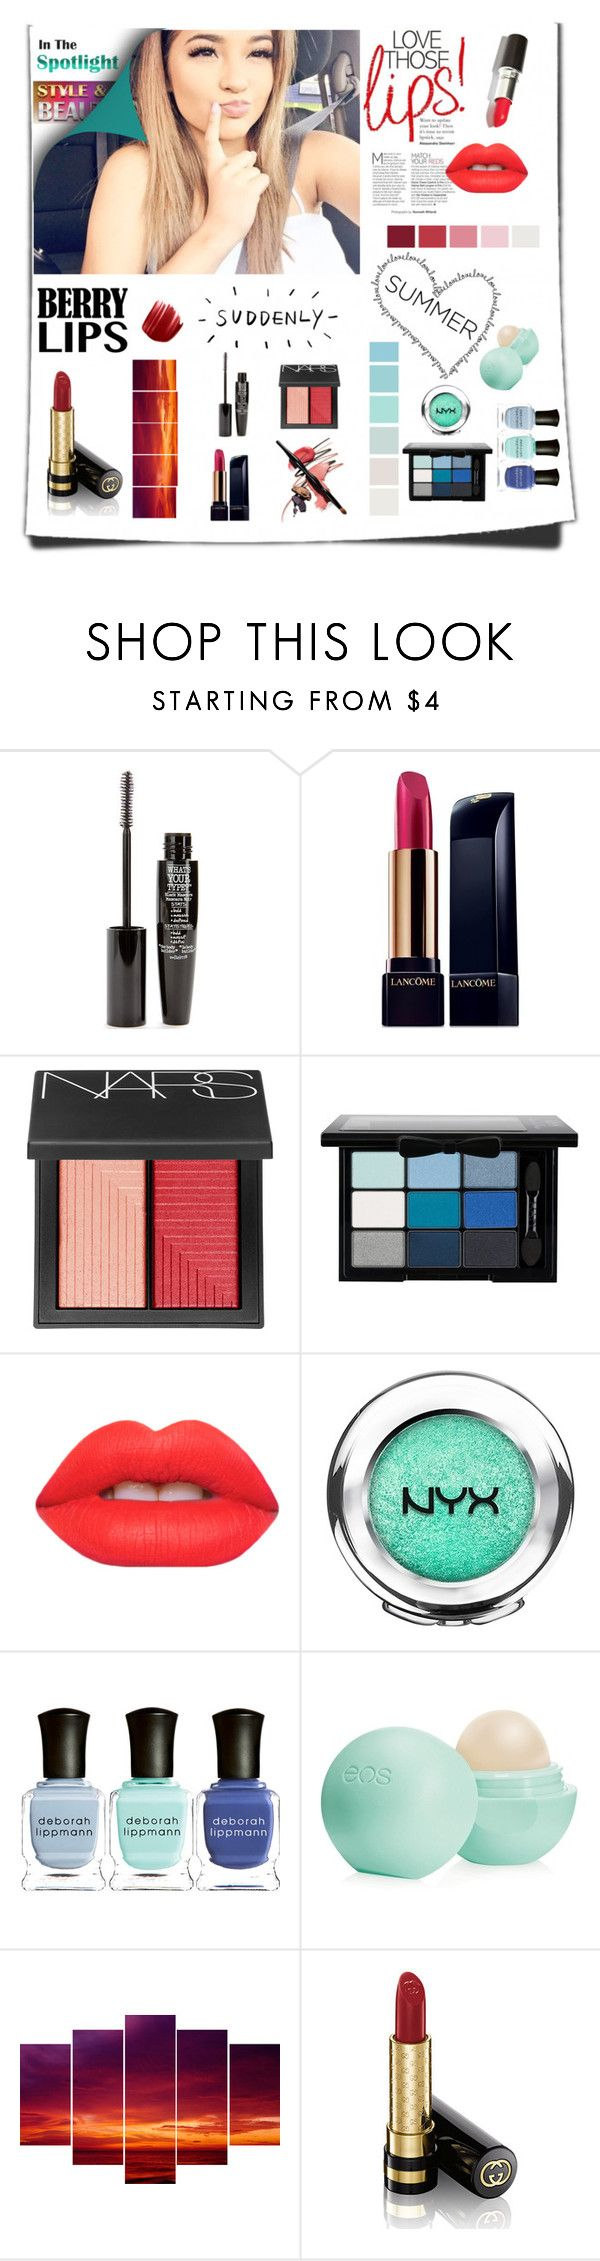 """Beauty magazine"" by kwr-23 ❤ liked on Polyvore featuring beauty, TheBalm, Lancôme, NARS Cosmetics, NYX, Lime Crime, Seed Design, Deborah Lippmann, Gucci and Urban Decay"